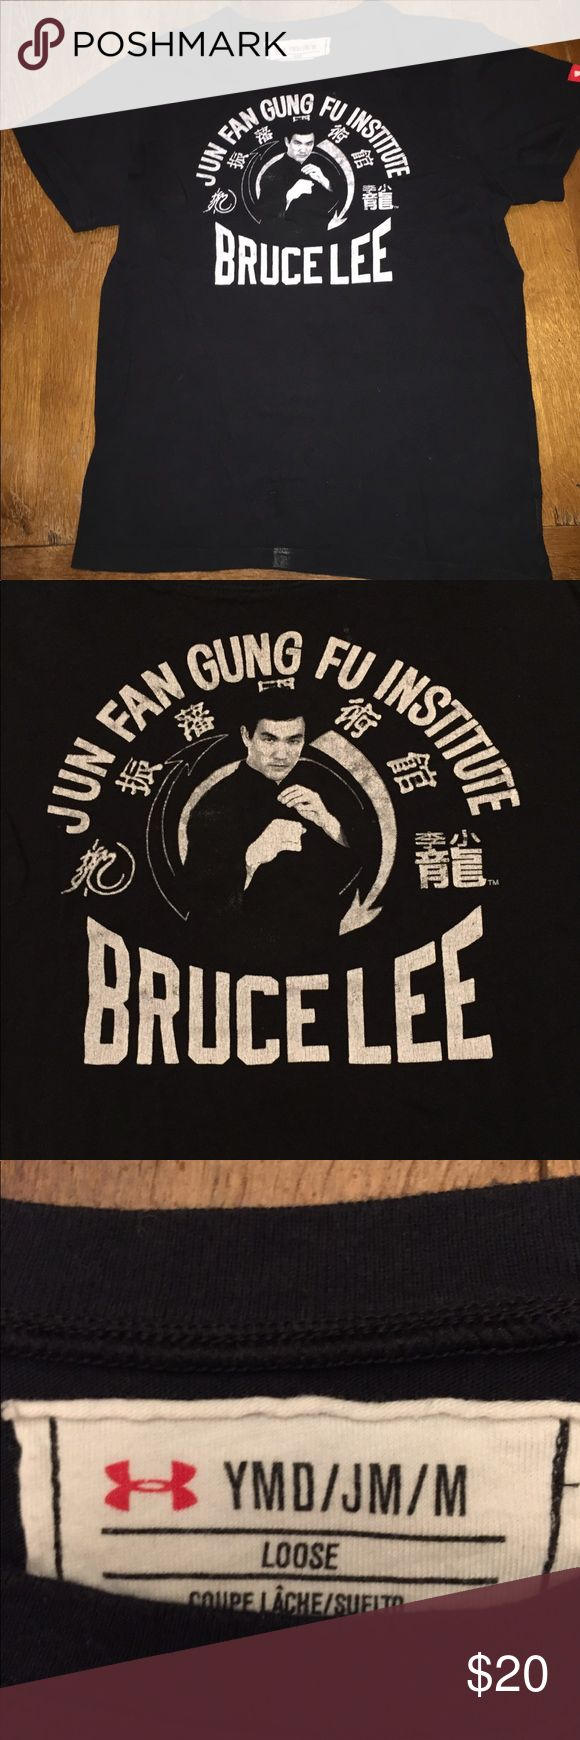 Retro Bruce Lee t shirt by Under Armour Excellent condition Under Armour Shirts & Tops Tees - Short Sleeve